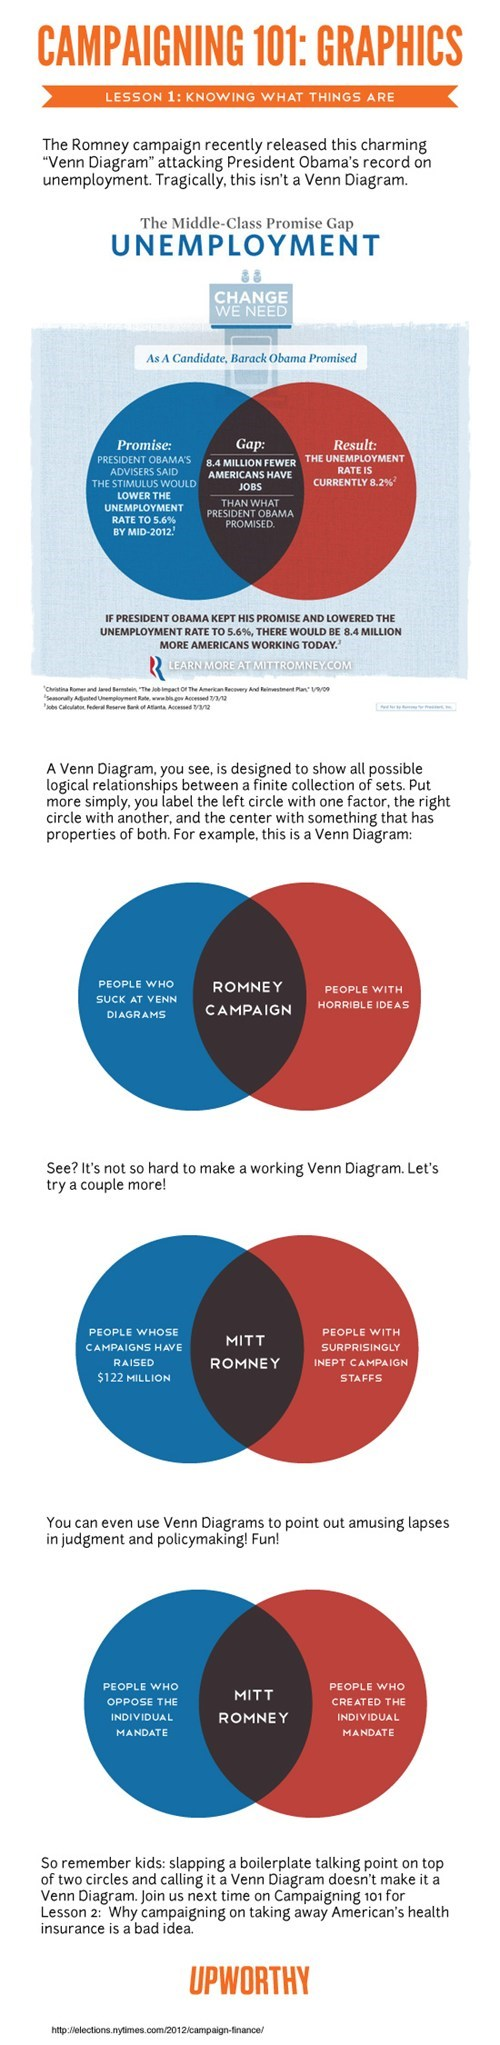 best of week misused Mitt Romney obama politics venn diagrams